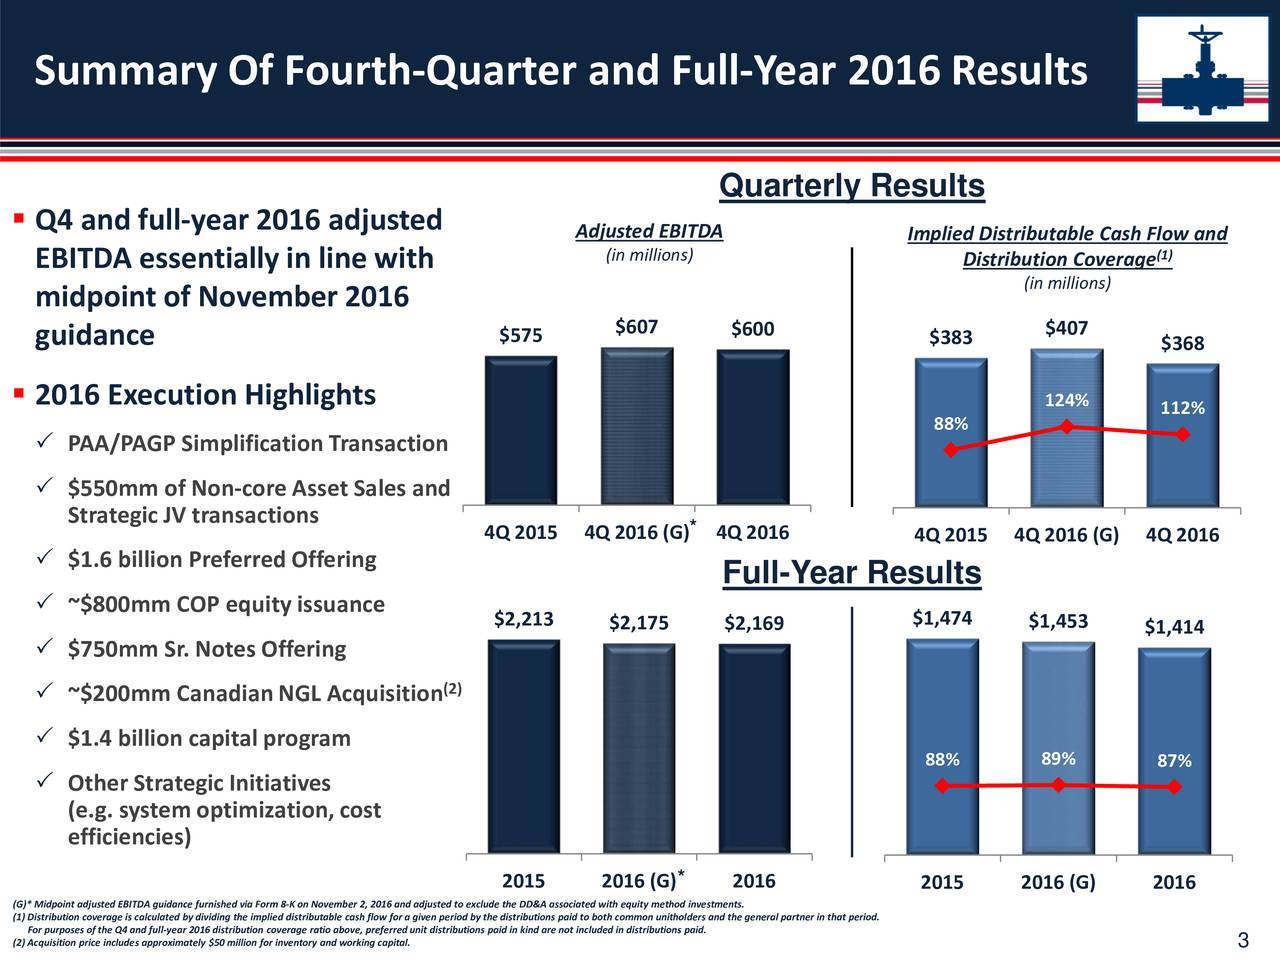 Quarterly Results Q4 and full-year 2016 adjusted Adjusted EBITDA Implied Distributable Cash Flow and (in millions) (1) EBITDA essentially in line with Distribution Coverage (in millions) midpoint of November 2016 500 3% $607 $600 450 $407 guidance $575 $383 2% 400 $368 350 2% 300 2016 Execution Highlights 250 124% 1% 112% 200 88% 1% PAA/PAGP Simplification Transaction 150 100 50% 0 $550mm of Non-core Asset Sales and 0 0% Strategic JV transactions 4Q 2015 4Q 2016 (G) * 4Q 2016 4Q 2015 4Q 2016 (G) 4Q 2016 $1.6 billion Preferred Offering Full-Year Results ~$800mm COP equityissuance 10 % $2,213 $2,175 $2,169 $1,474 $1,453 $1,414 10 $750mm Sr. Notes Offering % 10 (2) ~$200mm Canadian NGL Acquisition % 10 00 % $1.4 billion capital program 00 88% 89% 87% % Other Strategic Initiatives 00 0% (e.g. system optimization, cost 00 efficiencies) 0 % 2015 2016 (G) * 2016 2015 2016 (G) 2016 (G)* Midpoint adjusted EBITDA guidancefurnished via Form 8-K on November 2,2016 and adjusted to exclude the DD&A associated with equity method investments. (1) Distributioncoverage is calculated by dividing the implied distributable cash flow for a given period by the distributions paid to both common unitholders and the general partner in that period. For purposes of the Q4 and full-year 2016 distribution coverage ratio above, preferredunit distributions paid in kind are not included in distributions paid. (2) Acquisition price includes approximately $50 million for inventory and working capital. 3